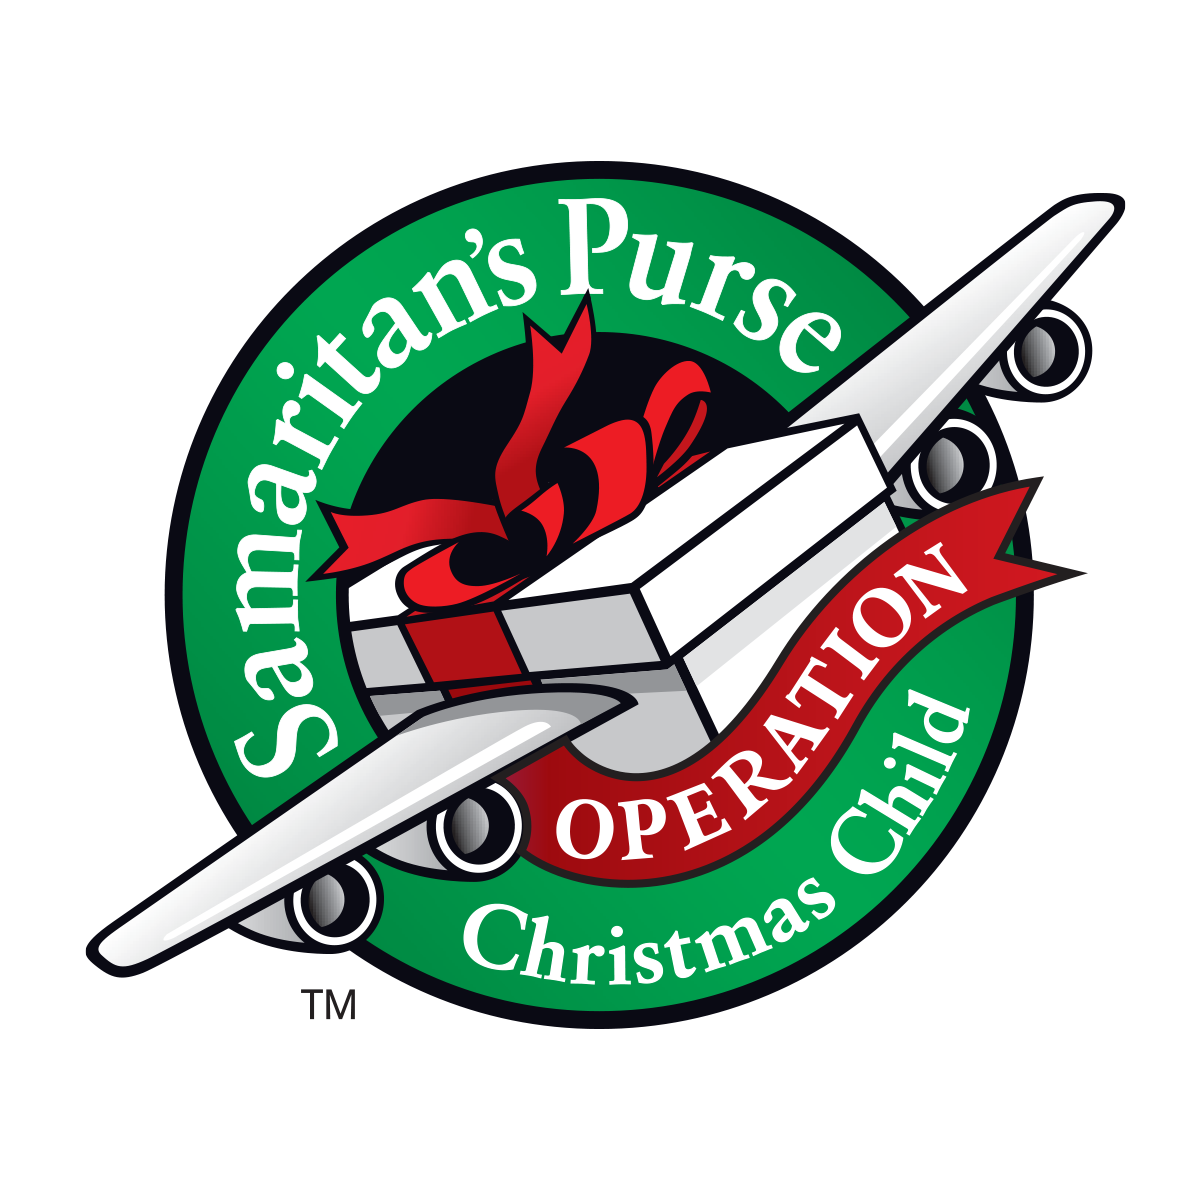 Operation Christmas Child Logo 2019 Operation Christmas Child : St Mark Lutheran Chuch – Omaha